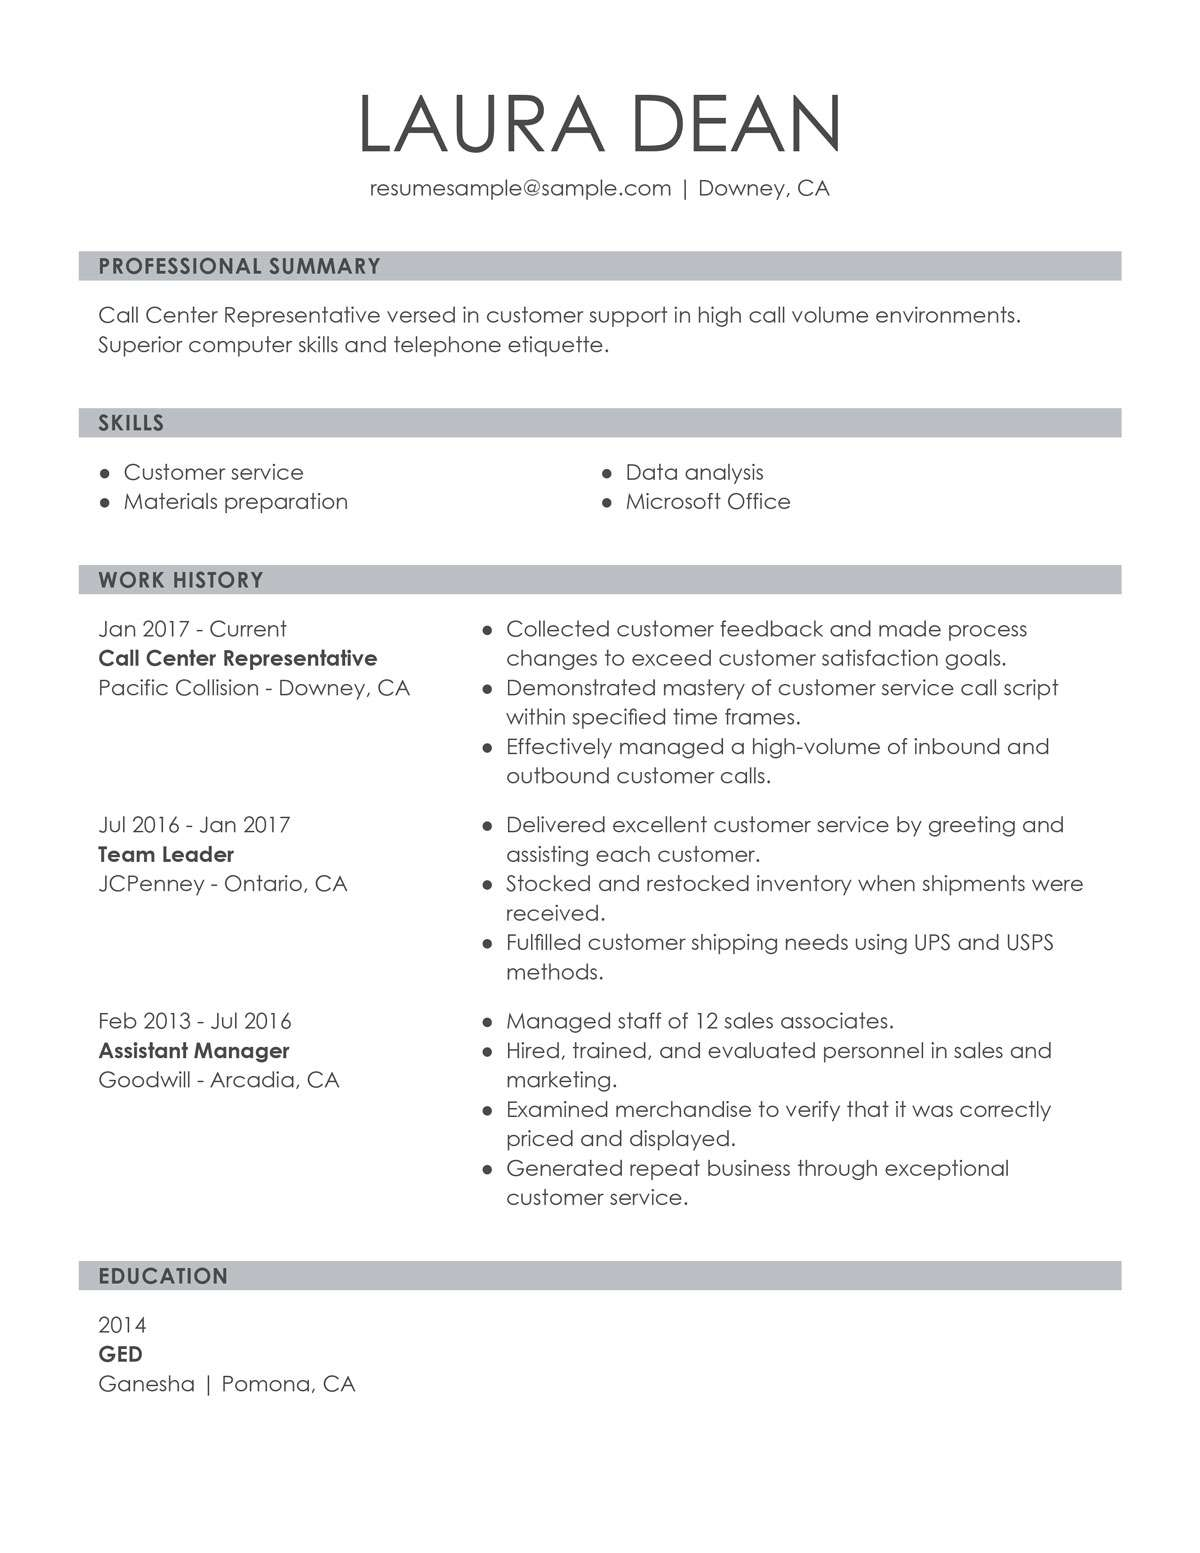 customize our customer representative resume example service bullet points call center Resume Customer Service Resume Bullet Points